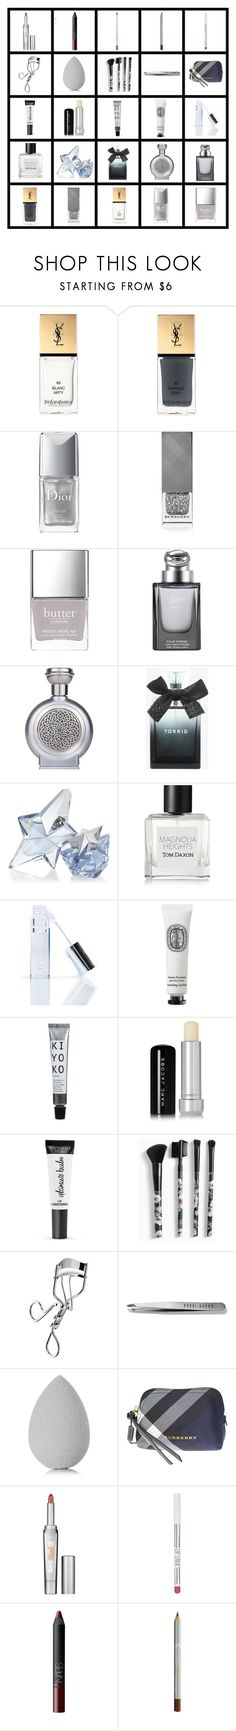 """""""Artemis Makeup 1.0"""" by tempermental-teen ❤ liked on Polyvore featuring beauty, Yves Saint Laurent, Christian Dior, Burberry, Butter London, Gucci, Boadicea the Victorious, Torrid, Thierry Mugler and Tom Daxon"""